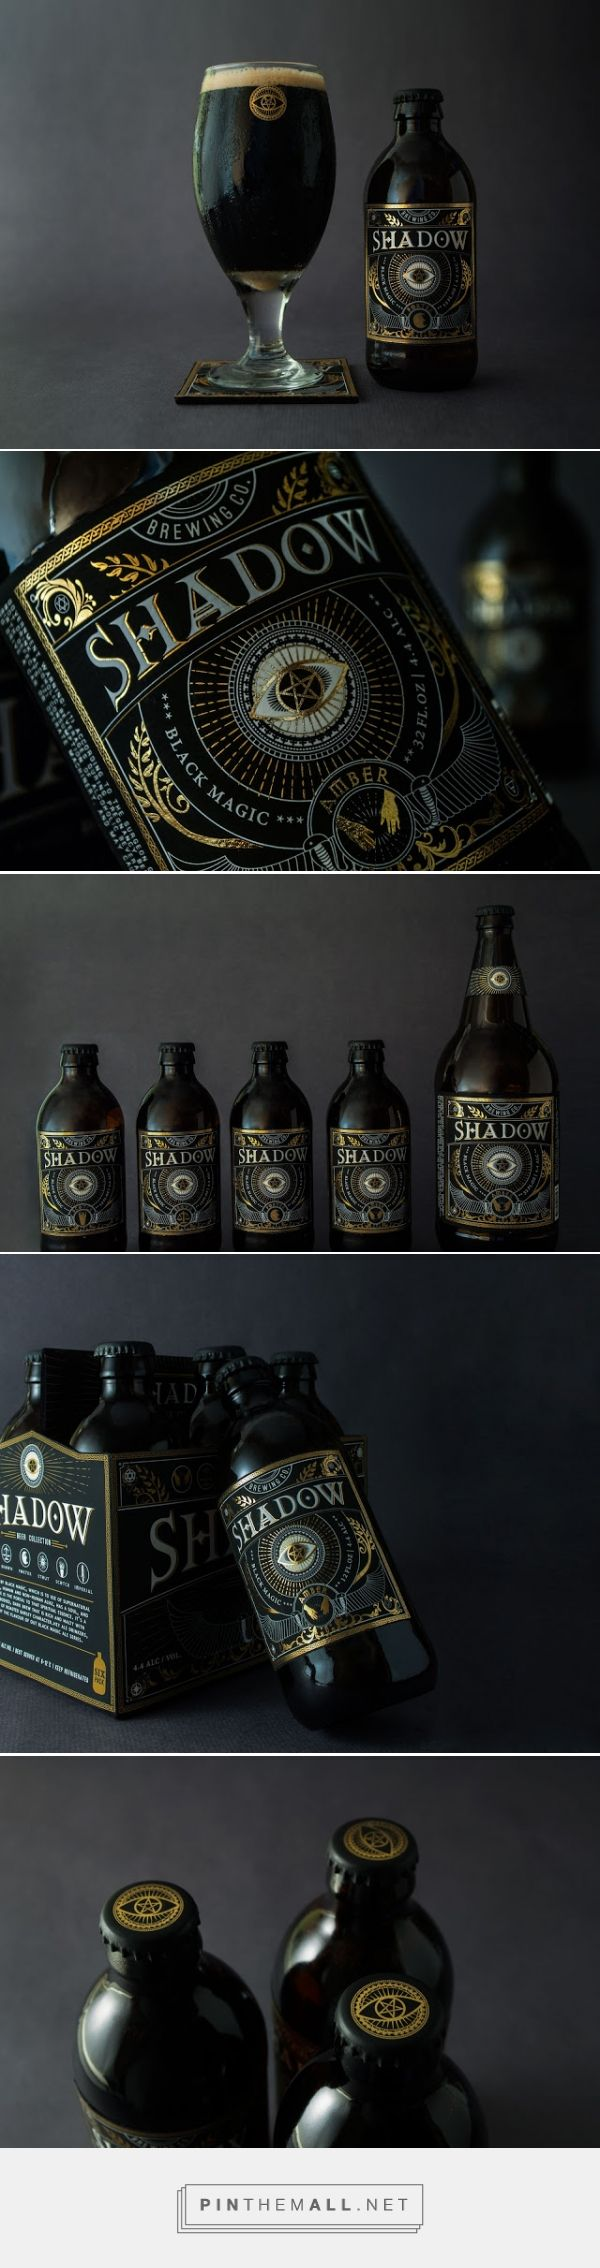 Shadow Beer concept packaging designed by Zoey Chung - http://www.packagingoftheworld.com/2015/09/shadow-beer-student-project.html